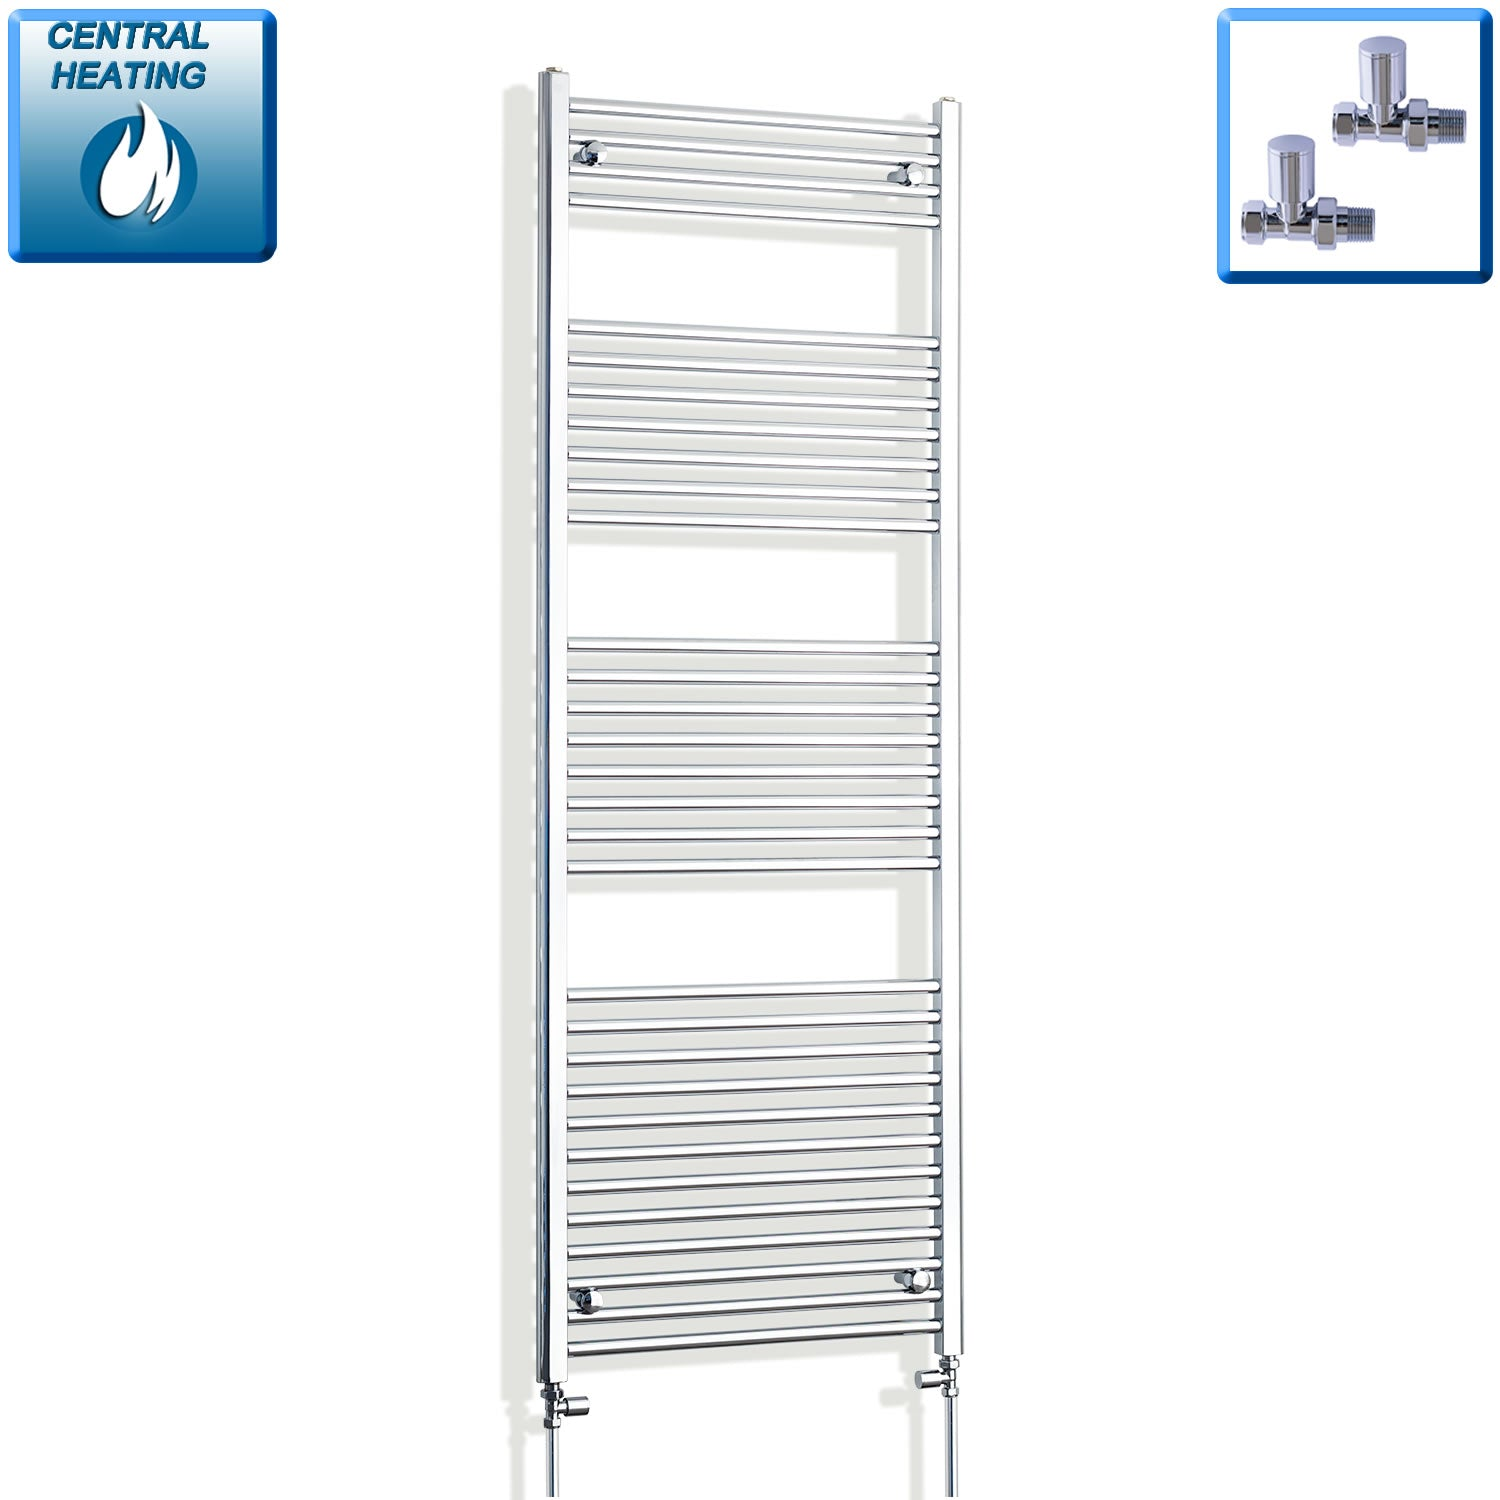 750mm Wide 1800mm High Chrome Towel Rail Radiator With Straight Valve